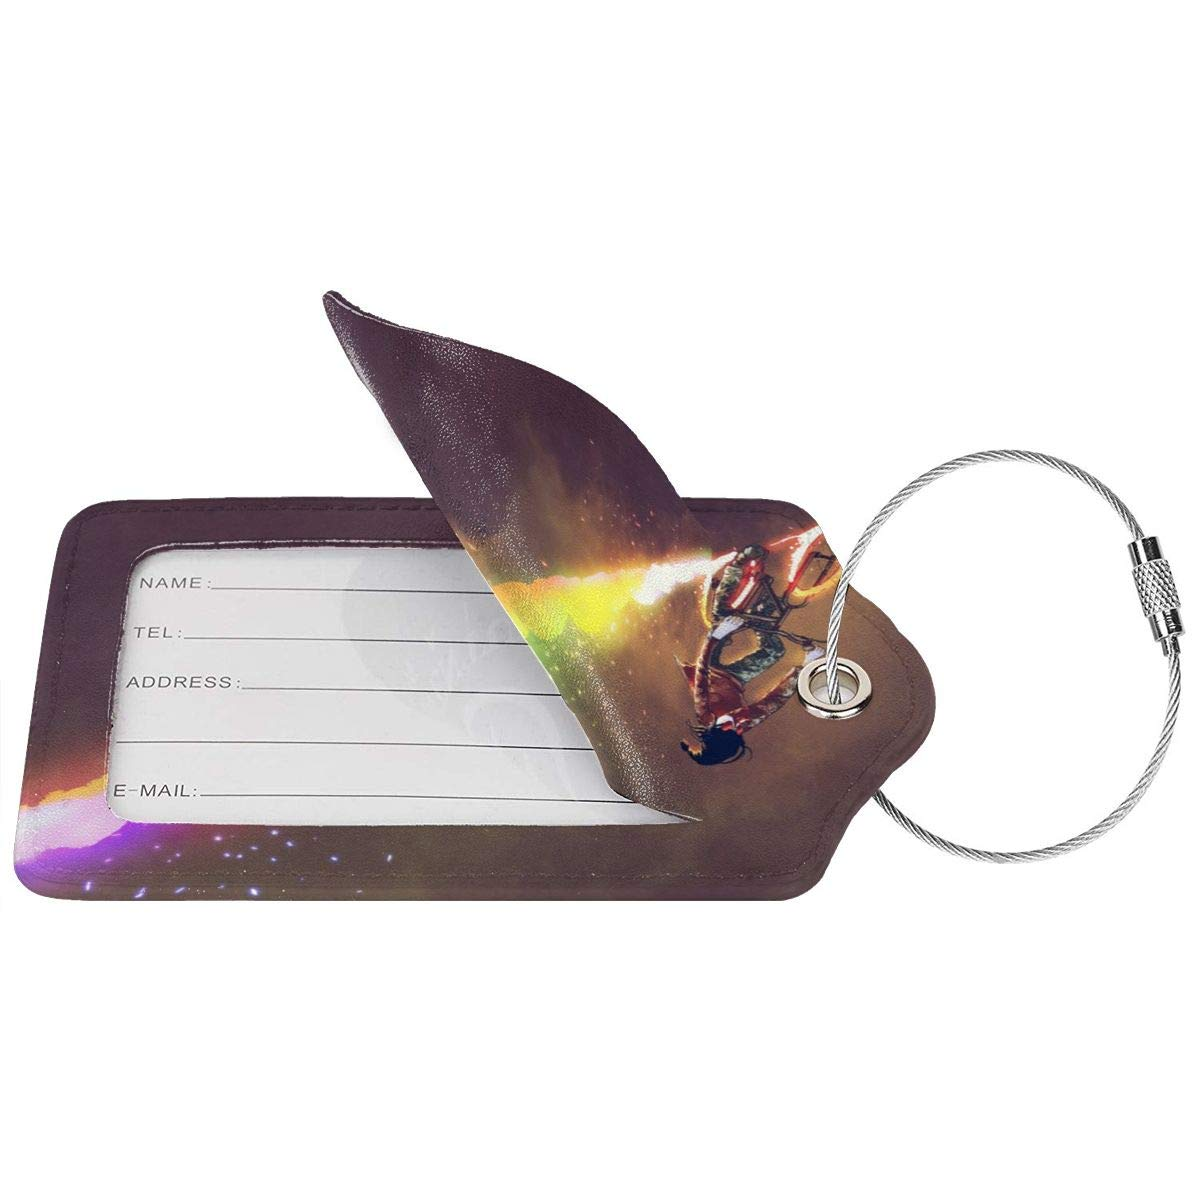 Lucaeat Colorful Burning Wheels Luggage Tag PU Leather Bag Tag Travel Suitcases ID